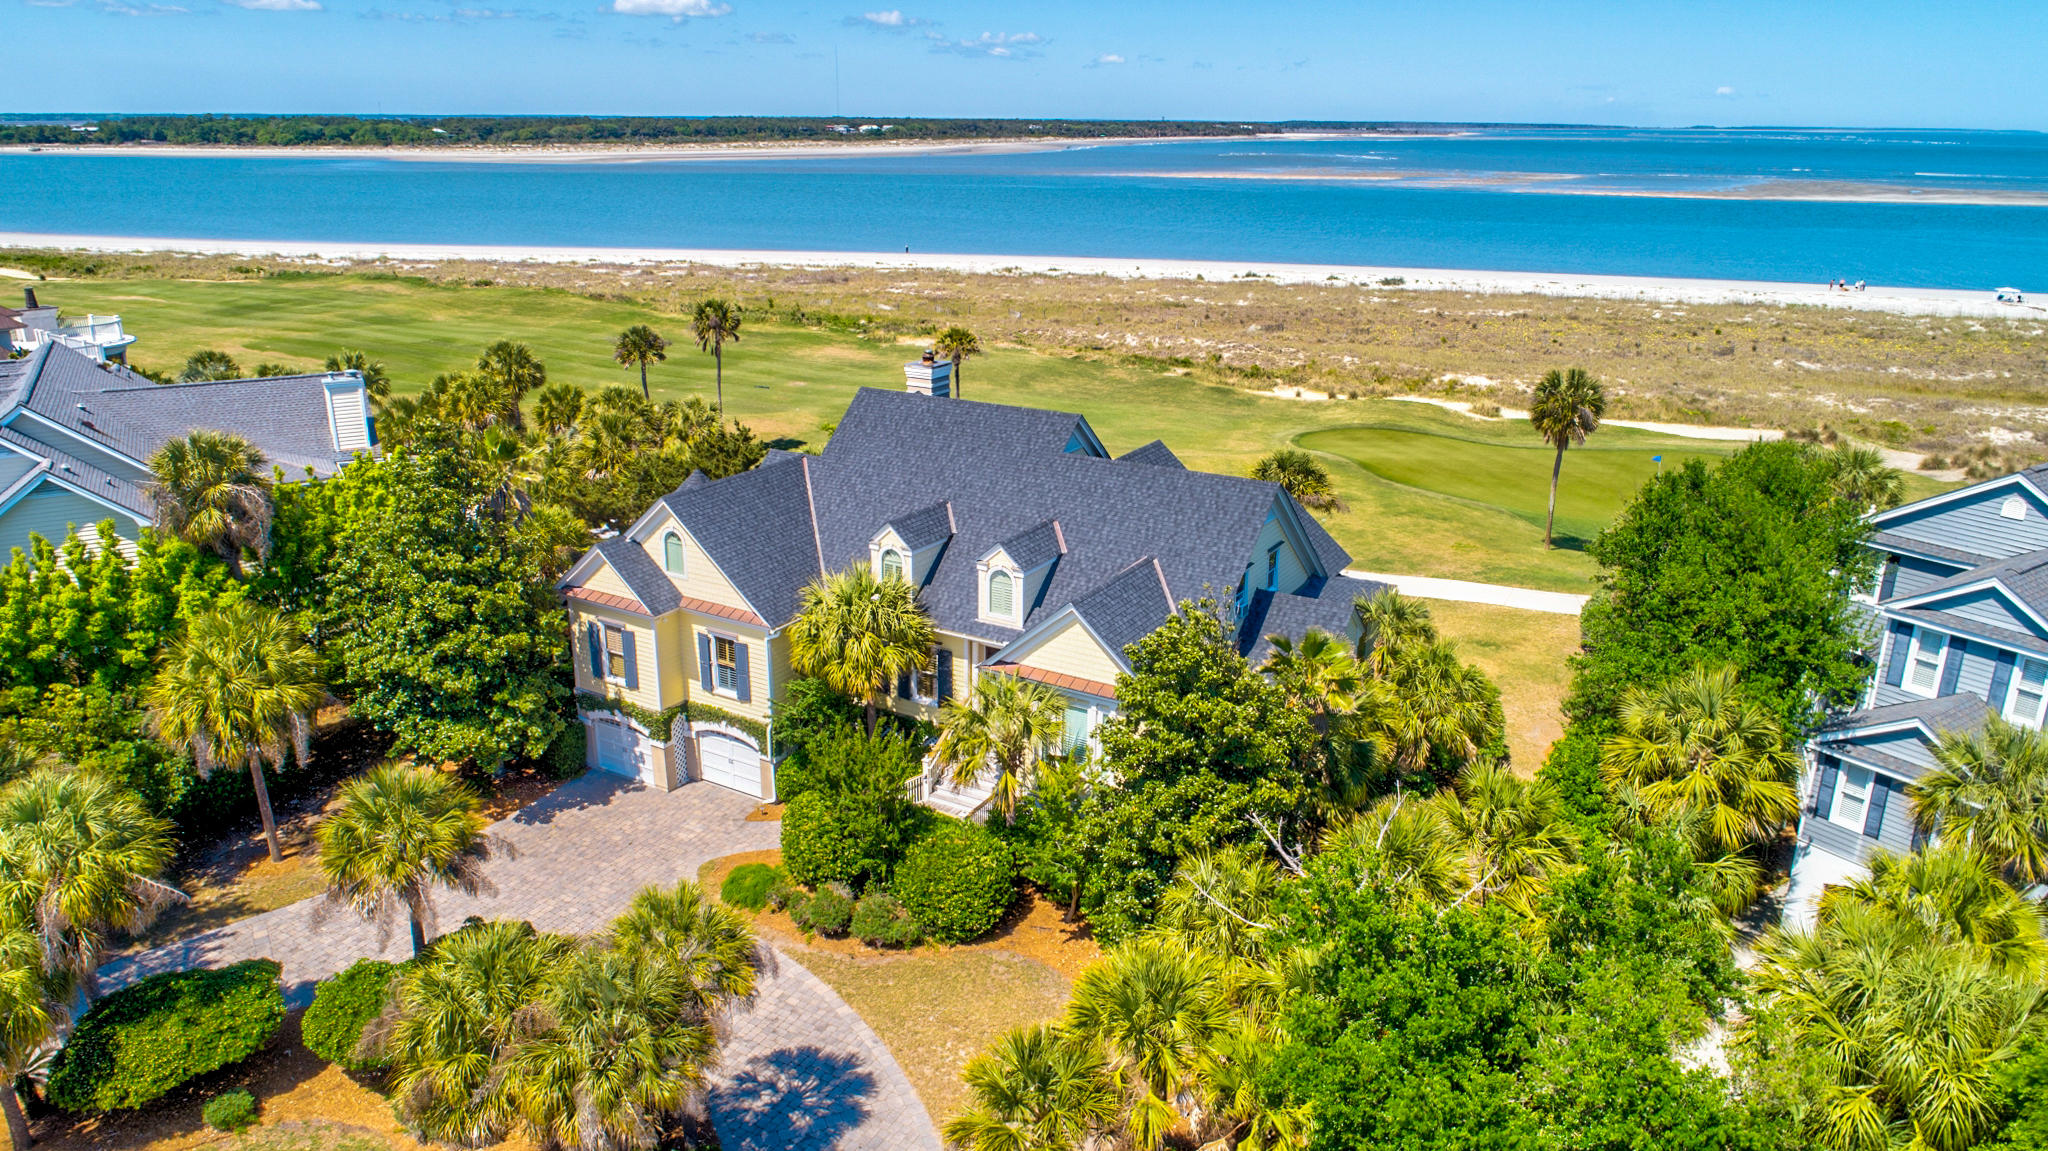 54 Ocean Point Drive Isle of Palms $4,000,000.00